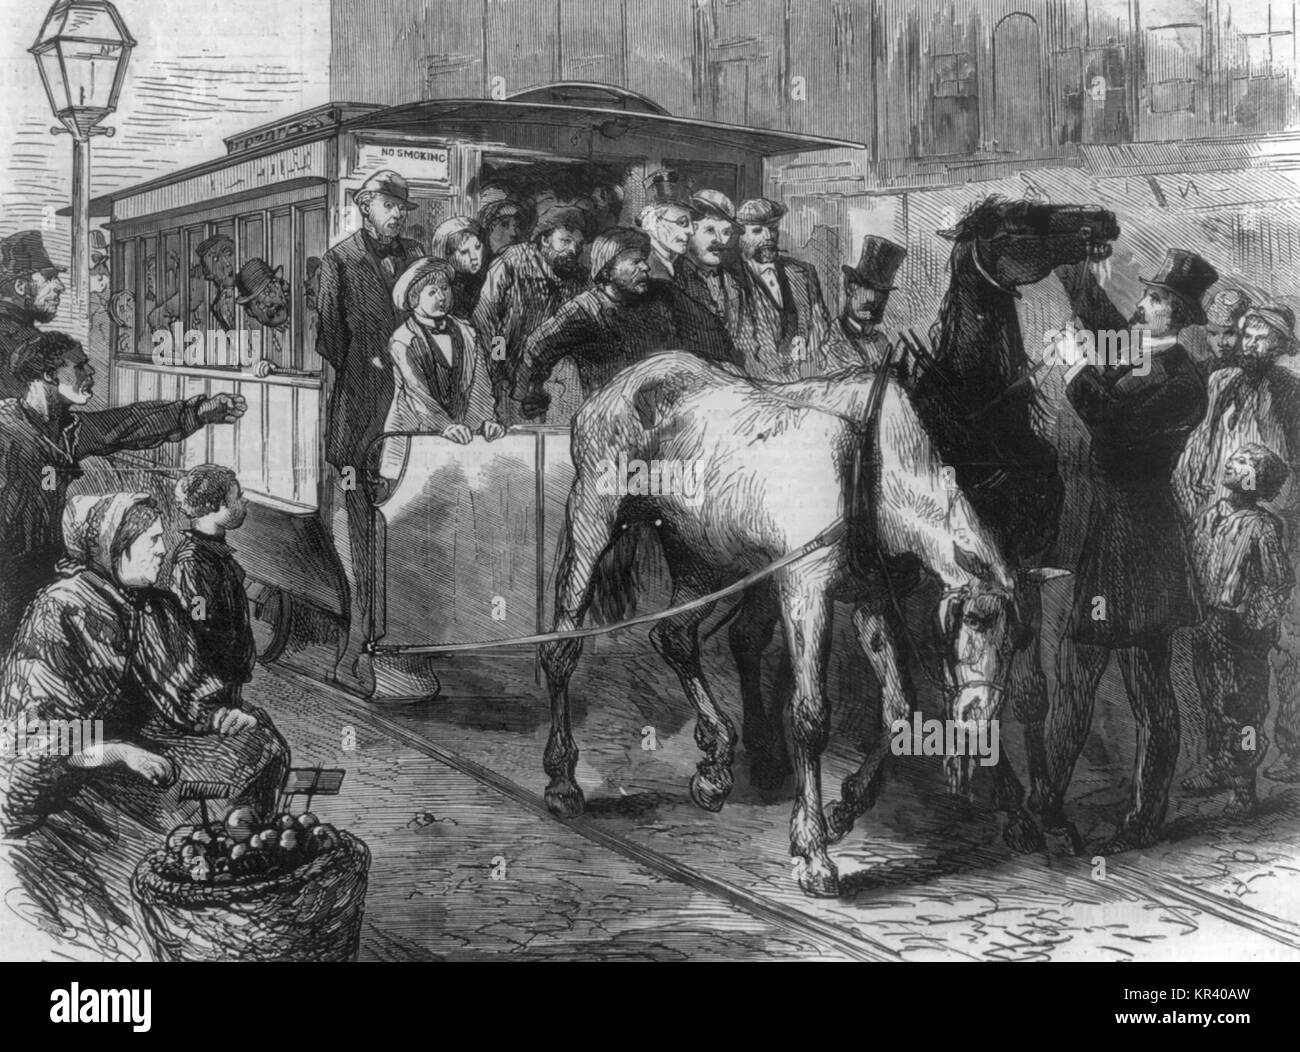 The Crowded car - Pair of horses unable to pull overcrowded street car in New York City, 1872 - Stock Image